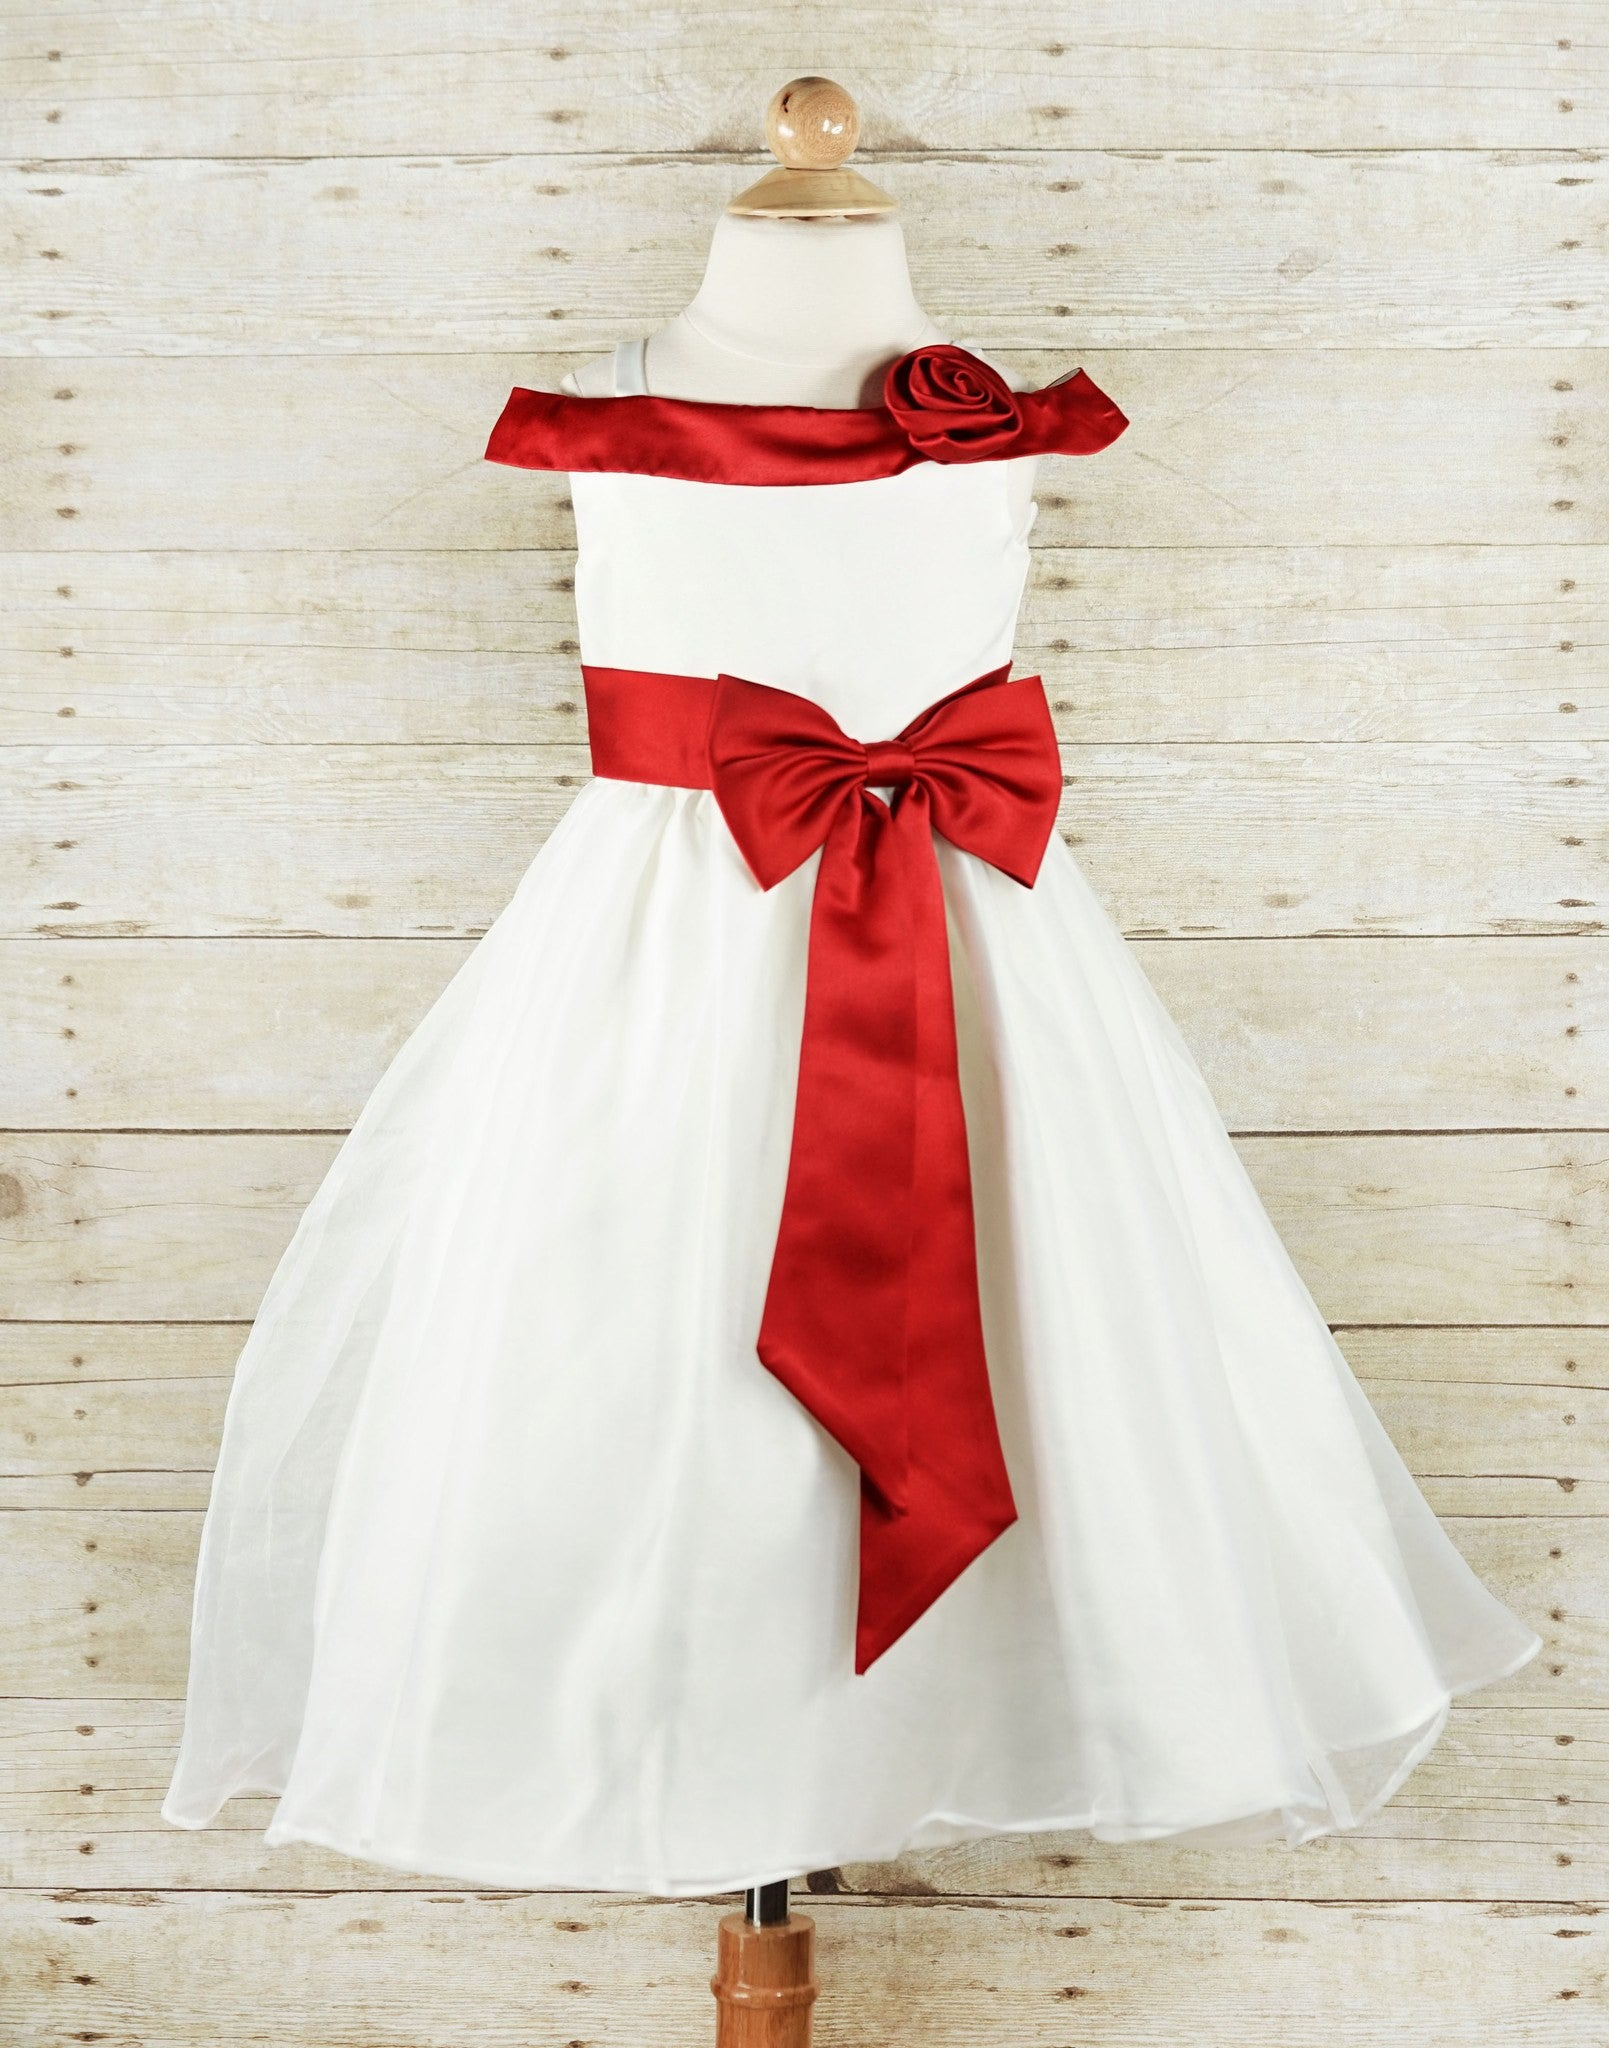 Stunning Ruby Red Sash And Bow Flower Girl Tulle Dress Red